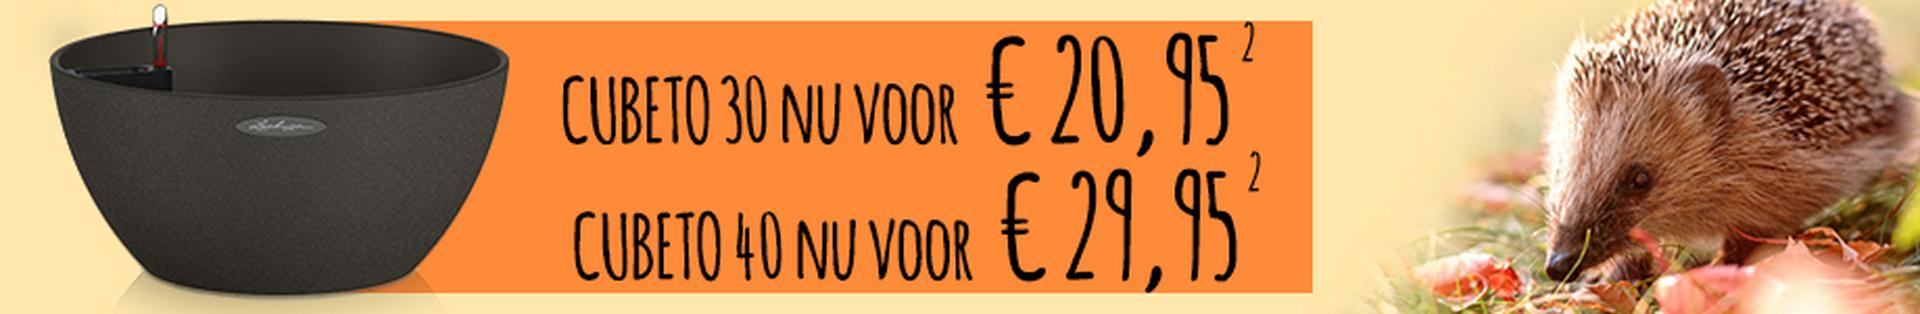 le_listing_banner_cubeto_special_011020_xs_nl